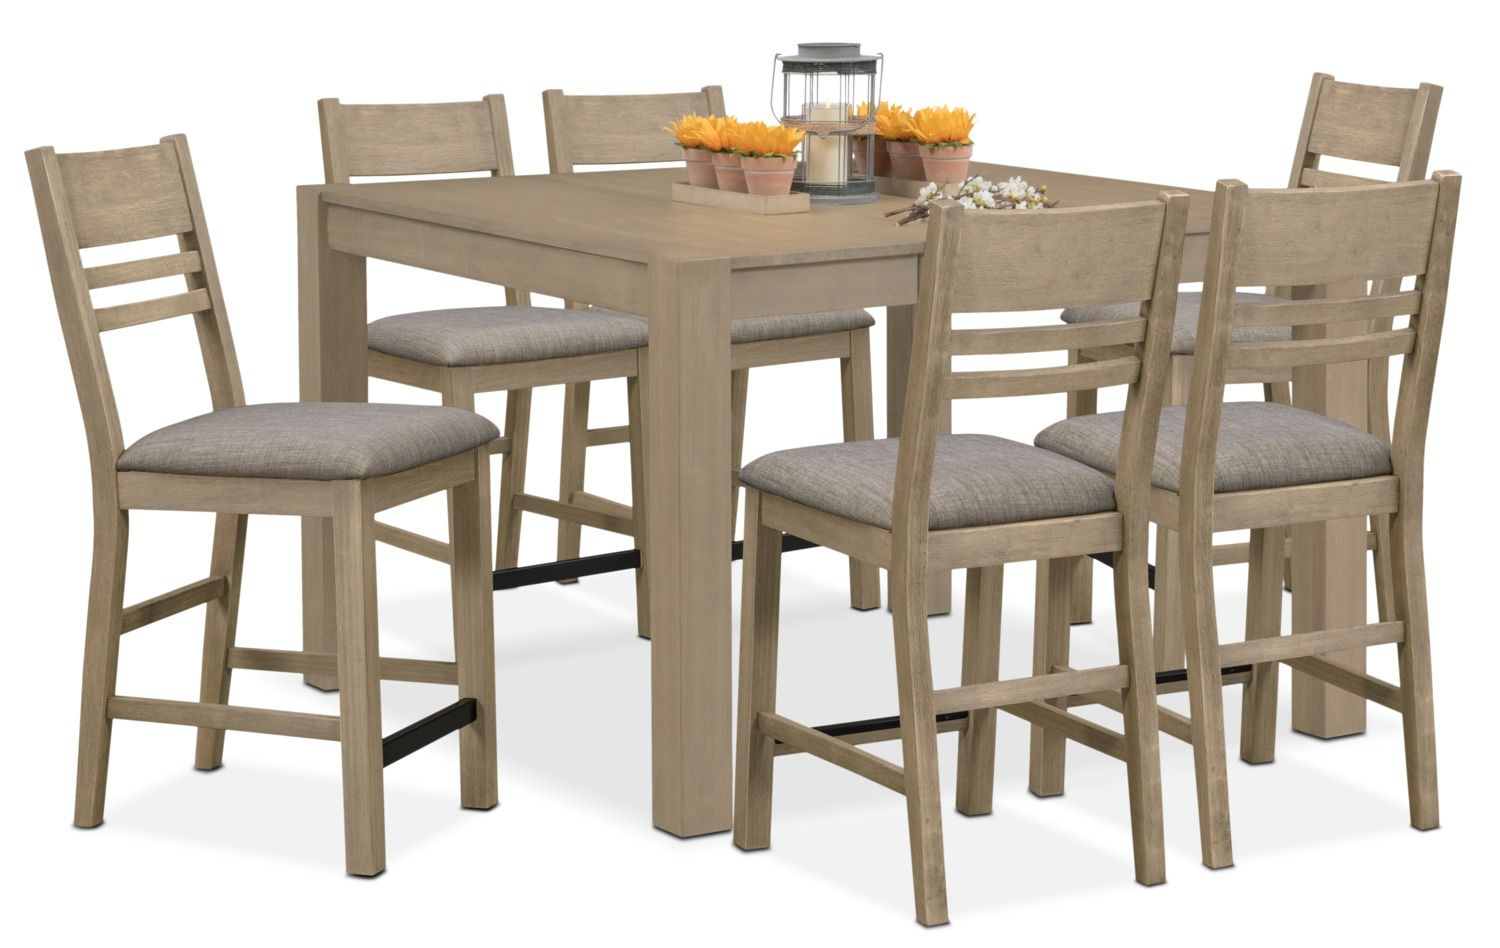 tribeca counterheight dining table and 6 dining chairs